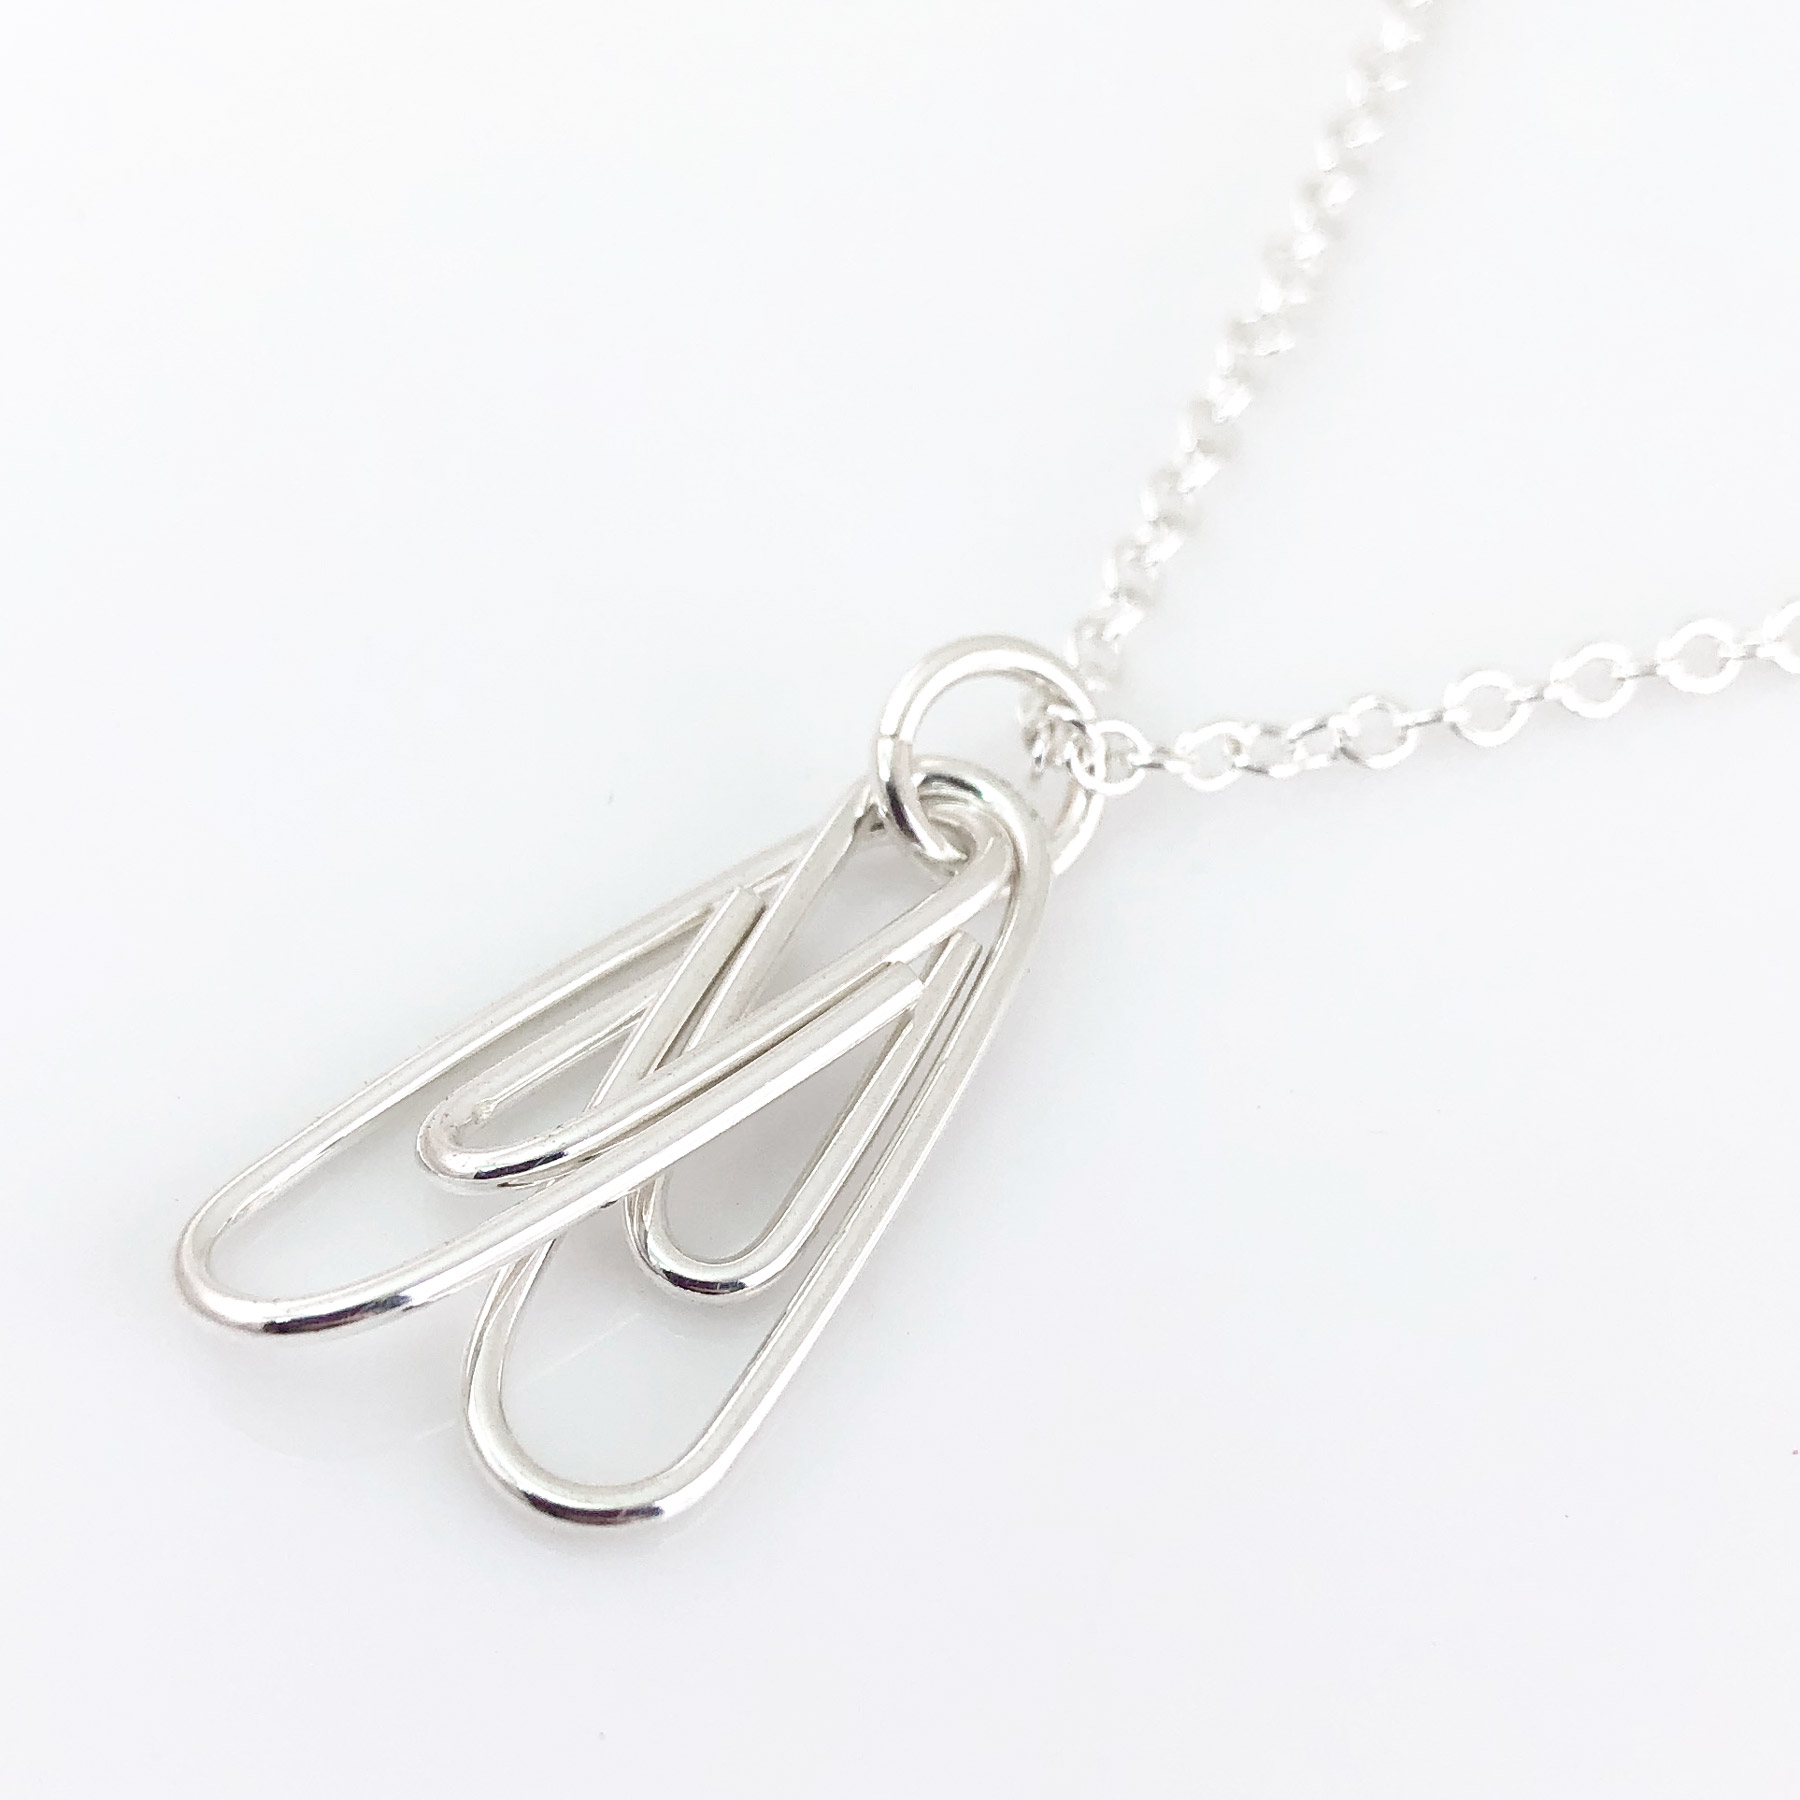 Two Linked Paperclips Necklace on a cable chain